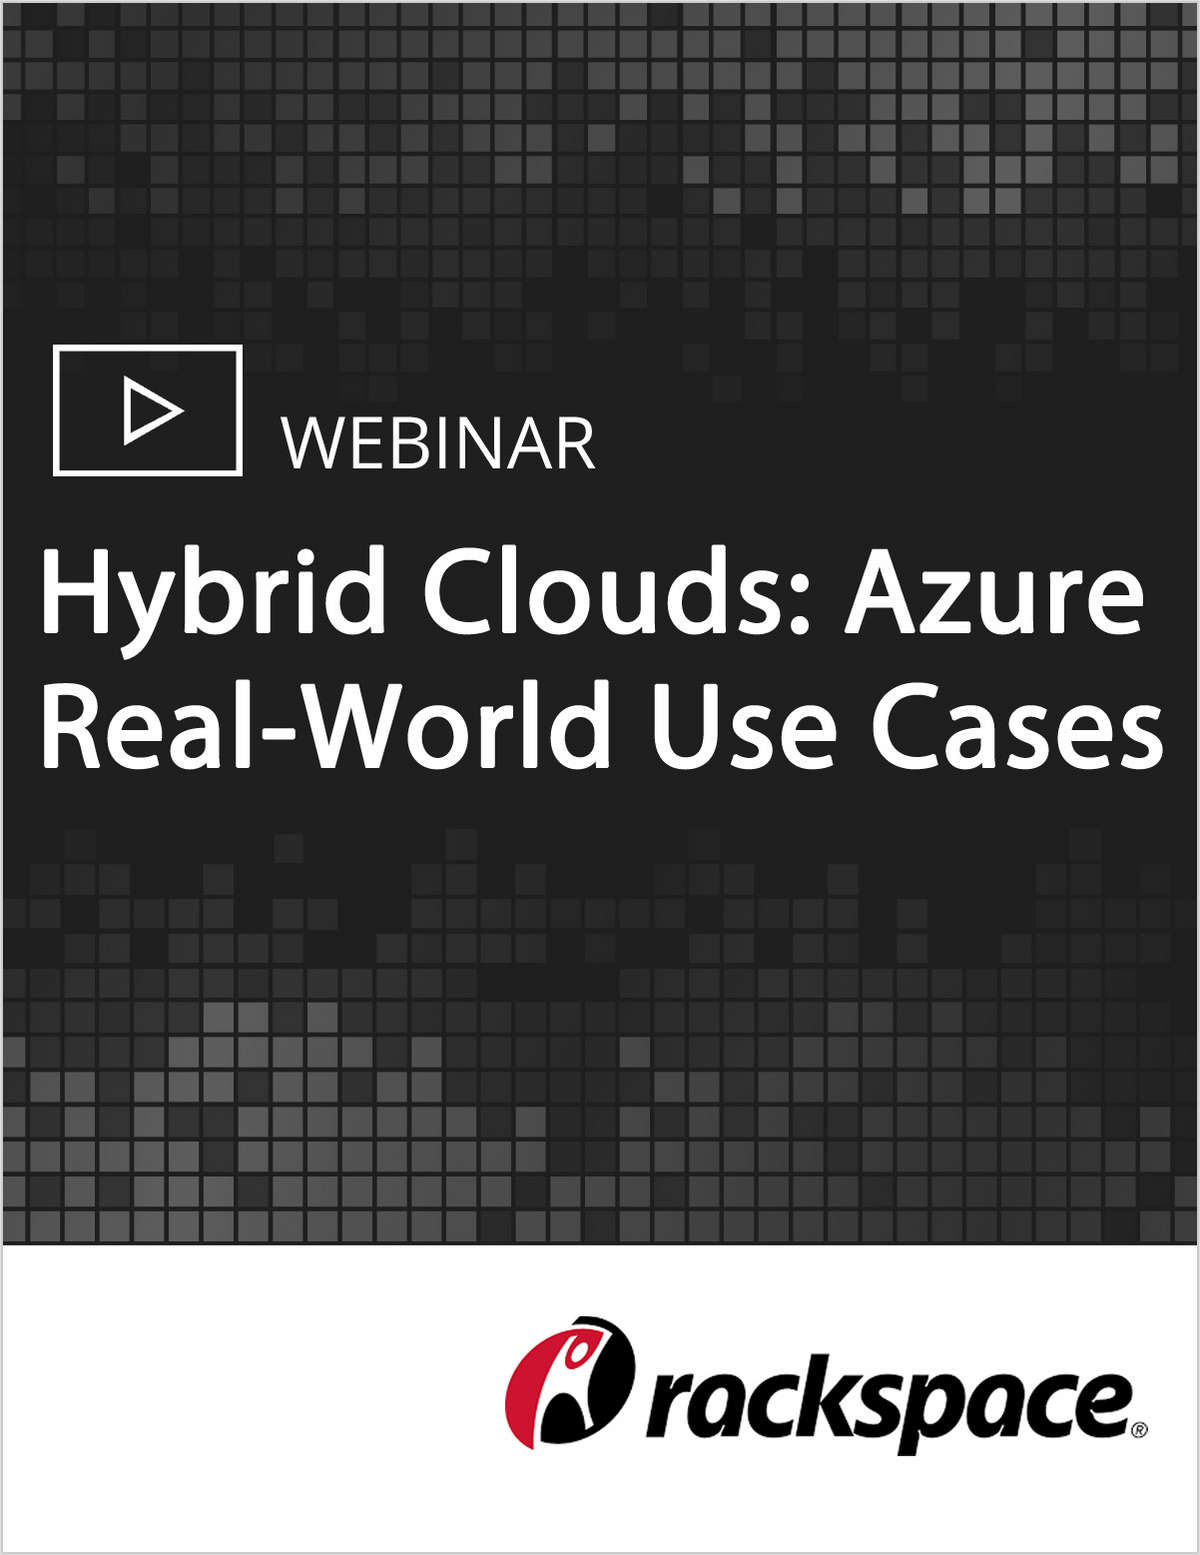 Hybrid Clouds: Azure Real-World Use Cases